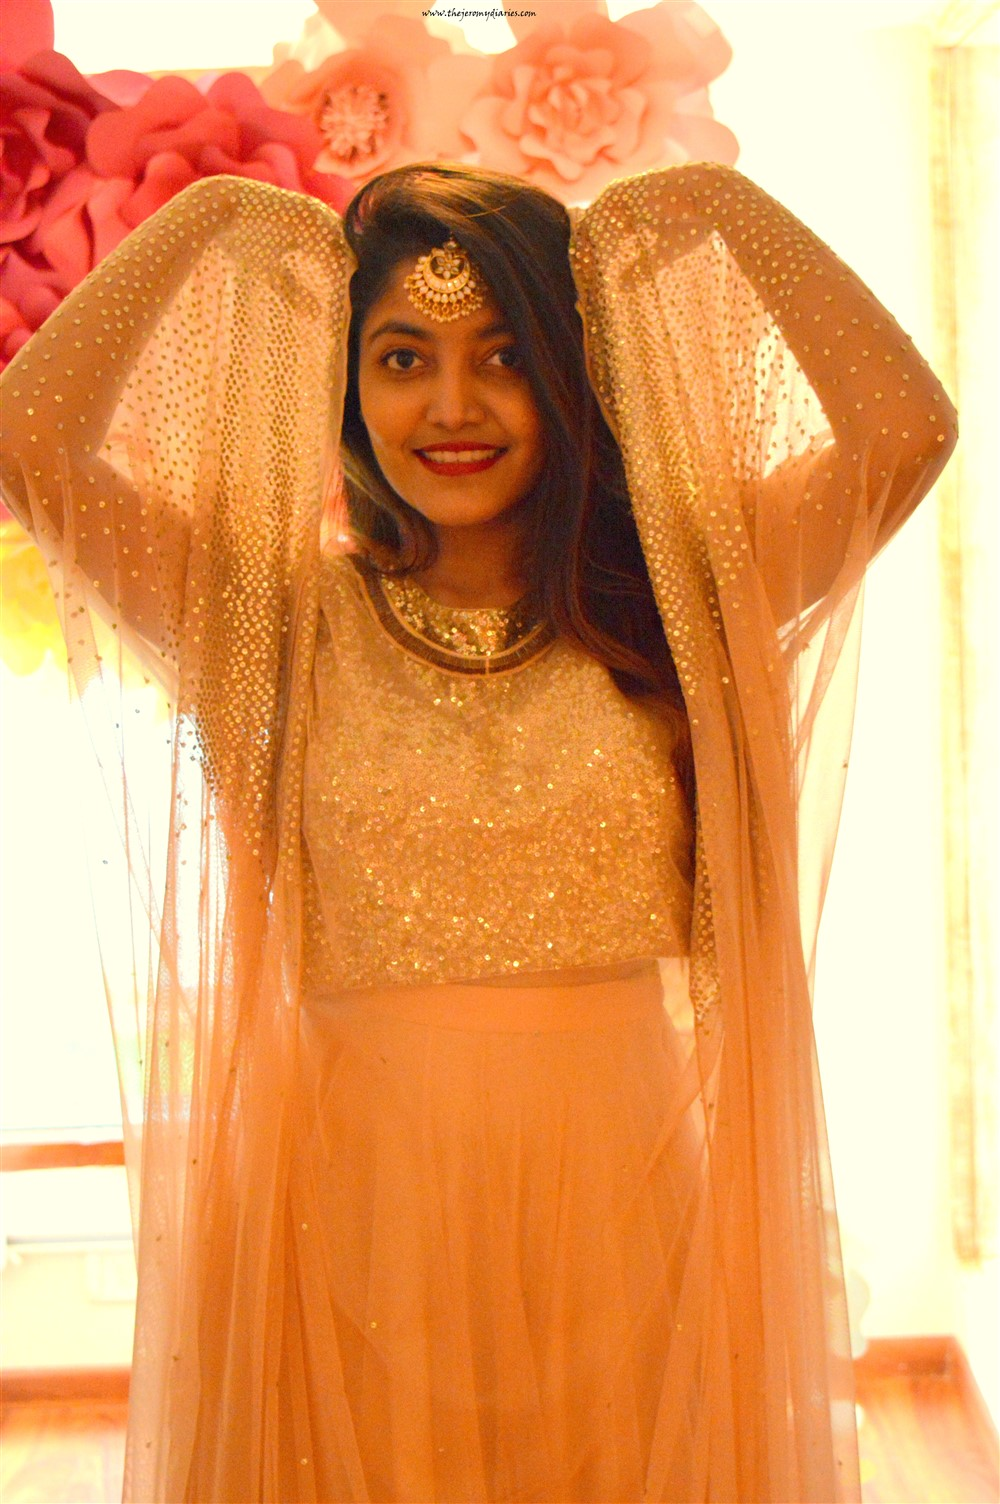 lehengas for diwali lehengas for navratri the jeromy diaries x anahe